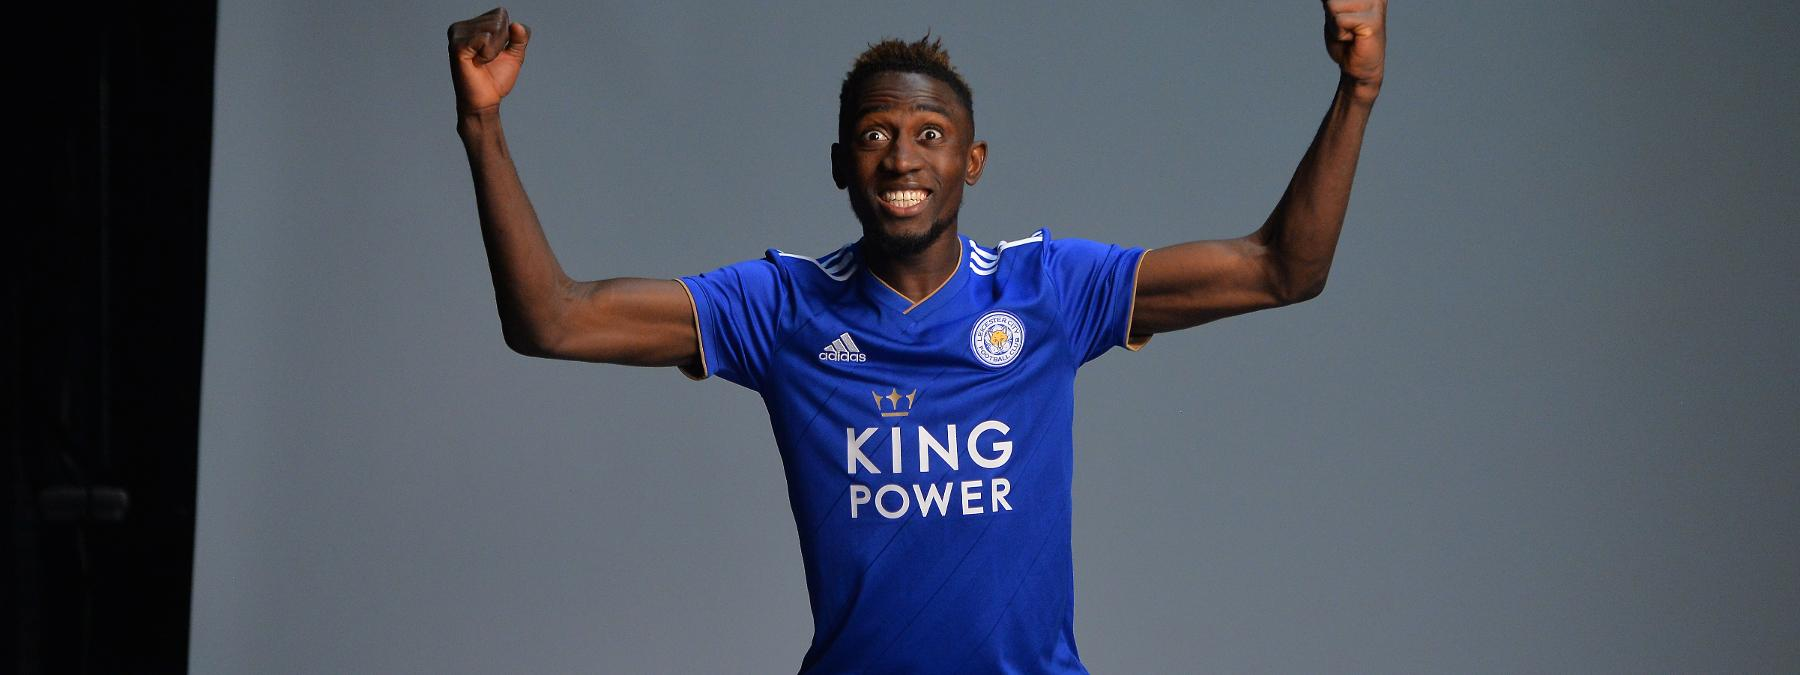 Leicester City's adidas 2018/19 Home Kit Photoshoot